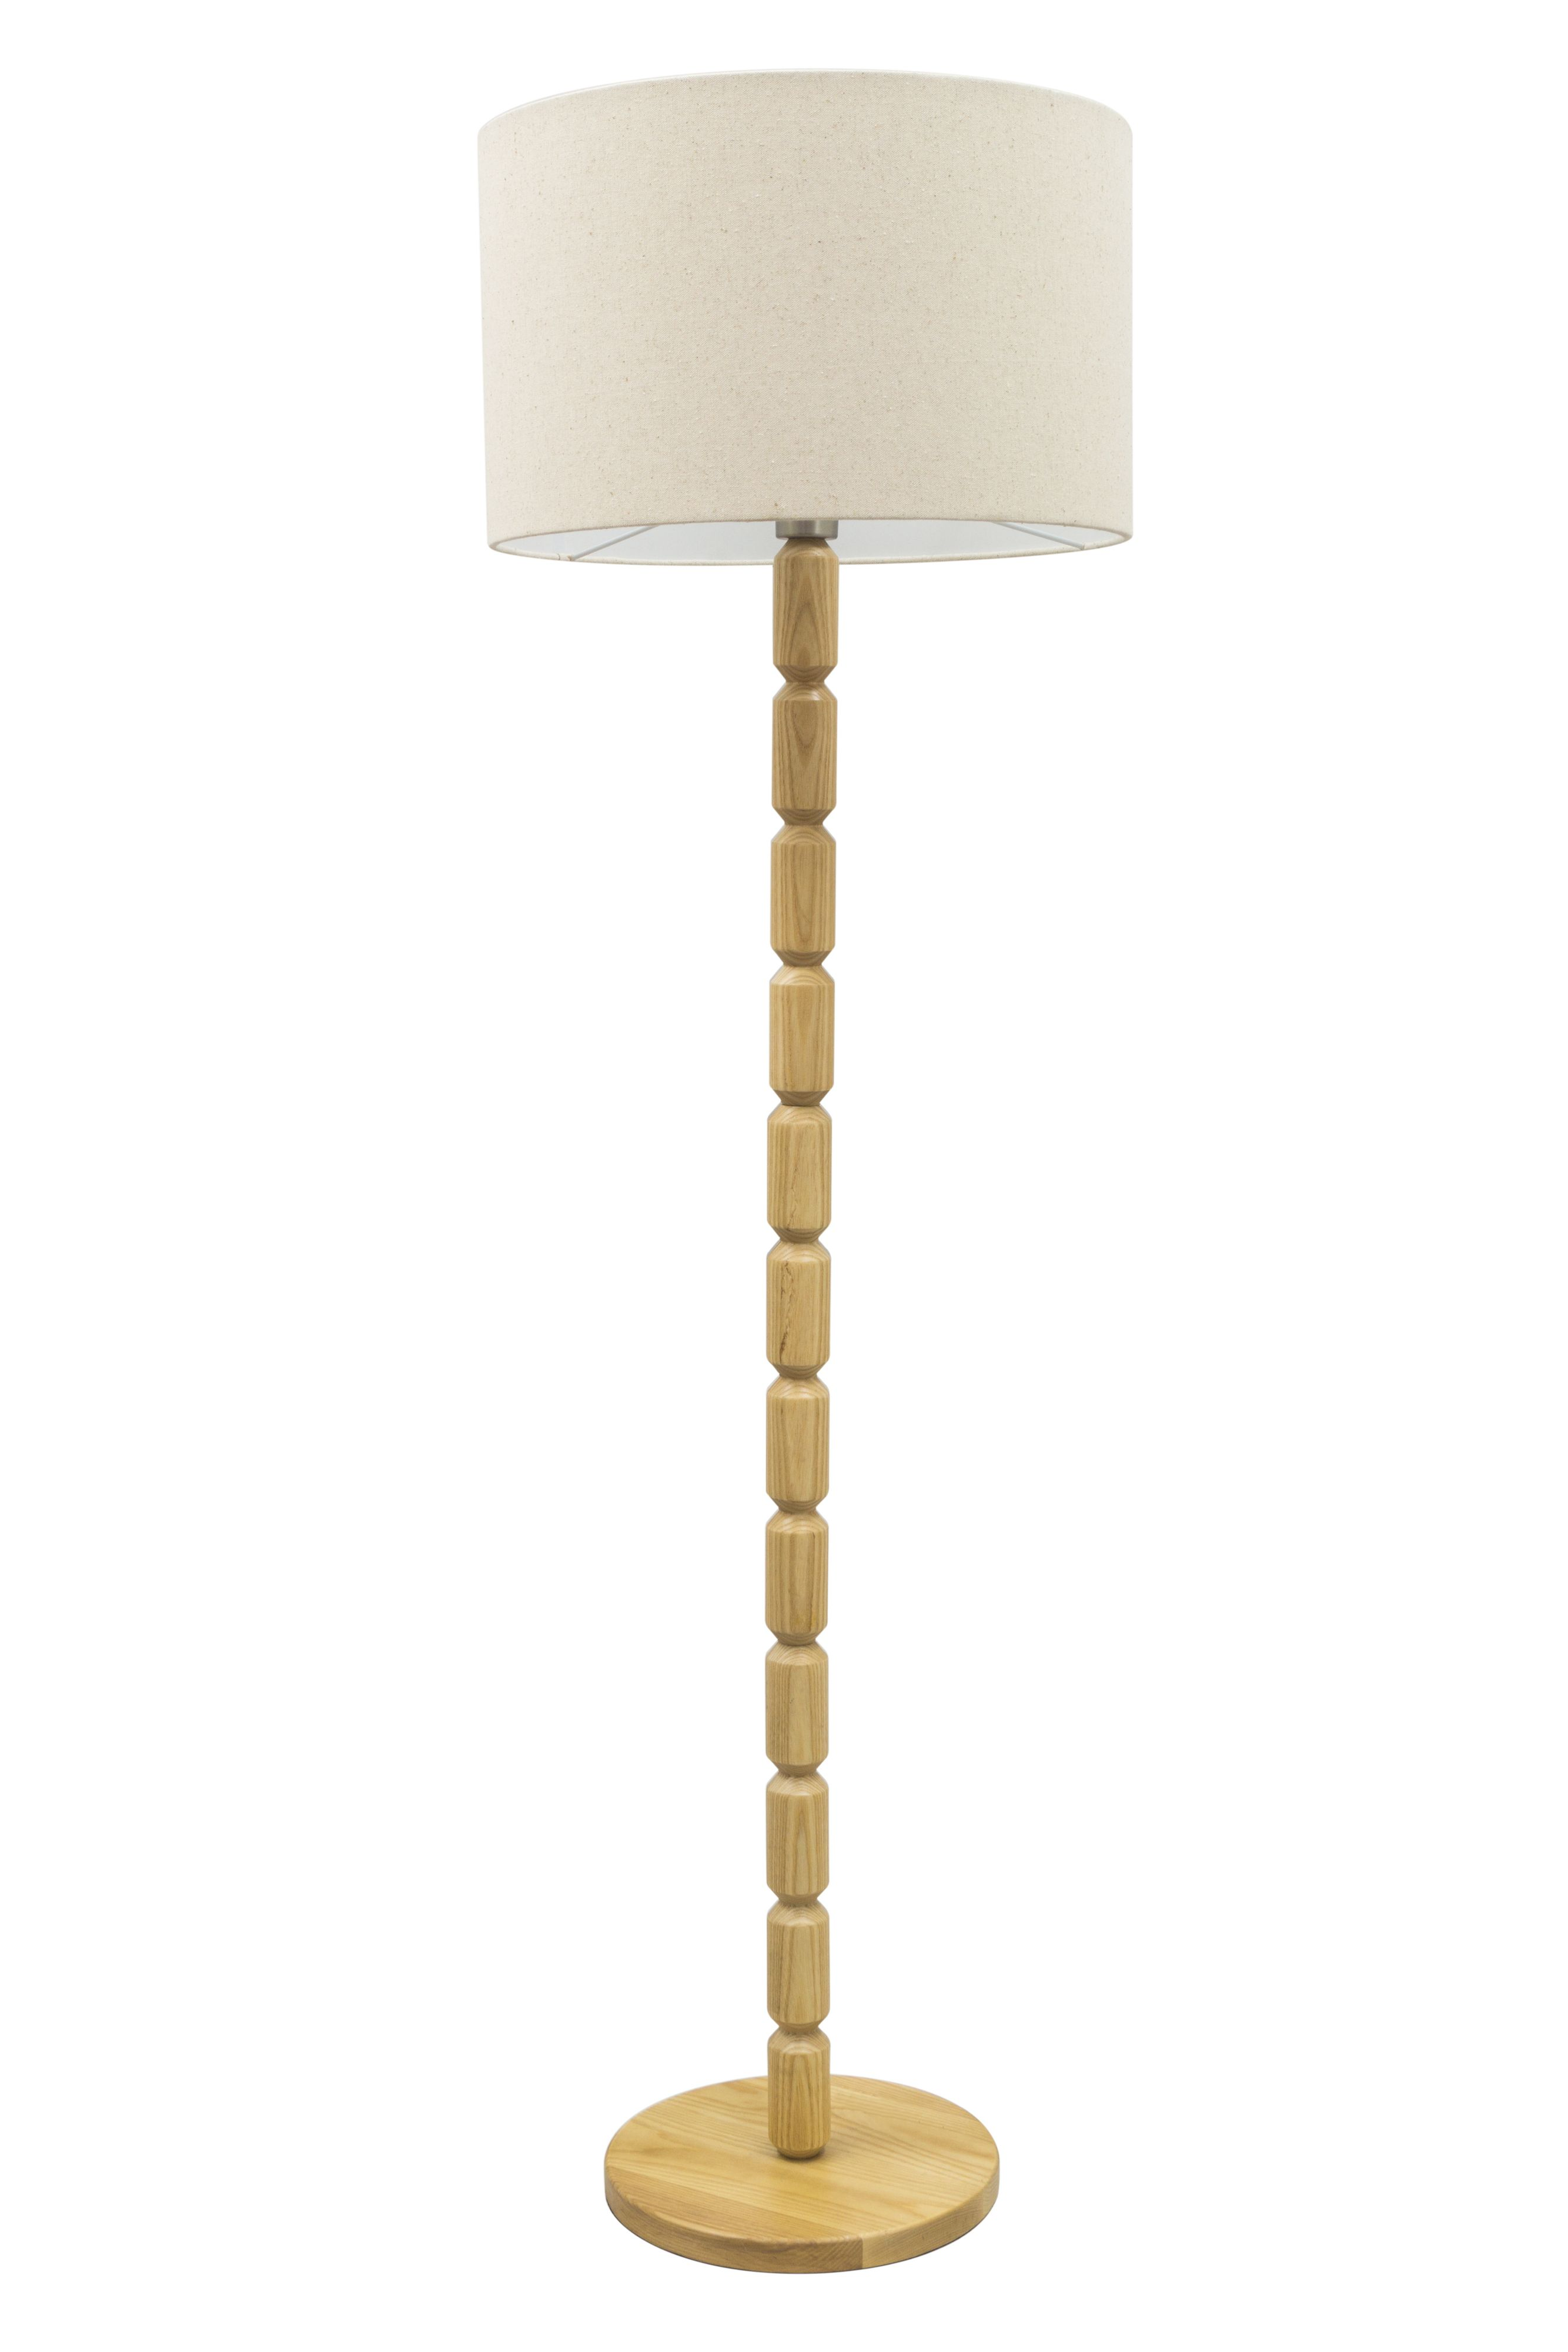 Linea columbia wood floor light review for Columbia wood flooring reviews